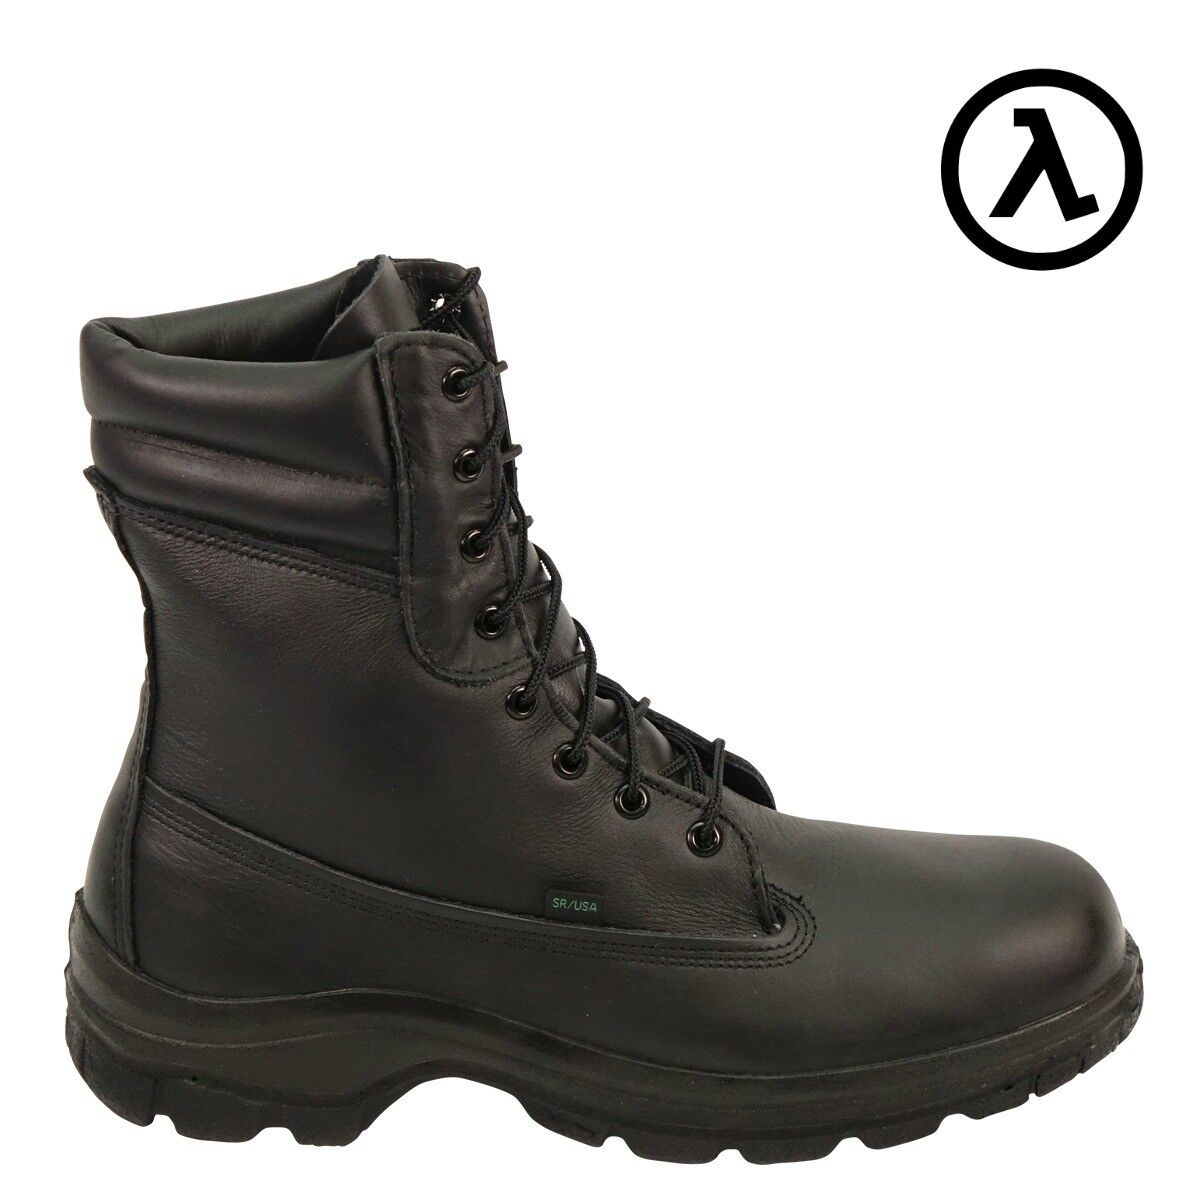 THgoldGOOD UNIFORM WEATHERBUSTER WEATHERBUSTER WEATHERBUSTER POSTAL WTRPF INSULATED BOOTS 834-6731 -ALL SIZES 837914